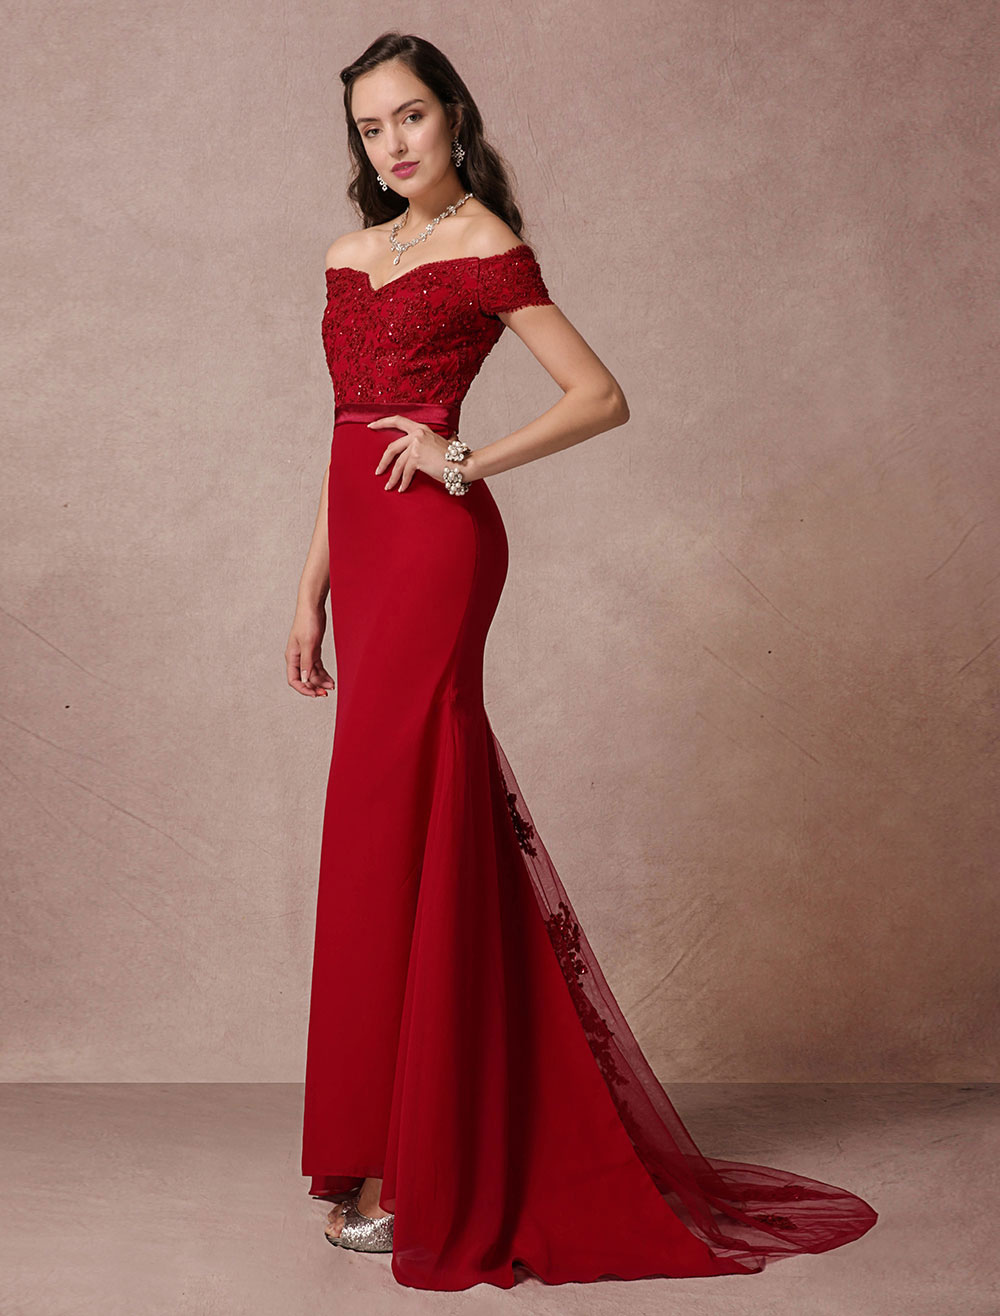 Red Prom Dresses 2018 Long Off The Shoulder Prom Dress Mermaid Backless Evening Dress  fishtail Lace Beading Court Train Red Carpet Dress